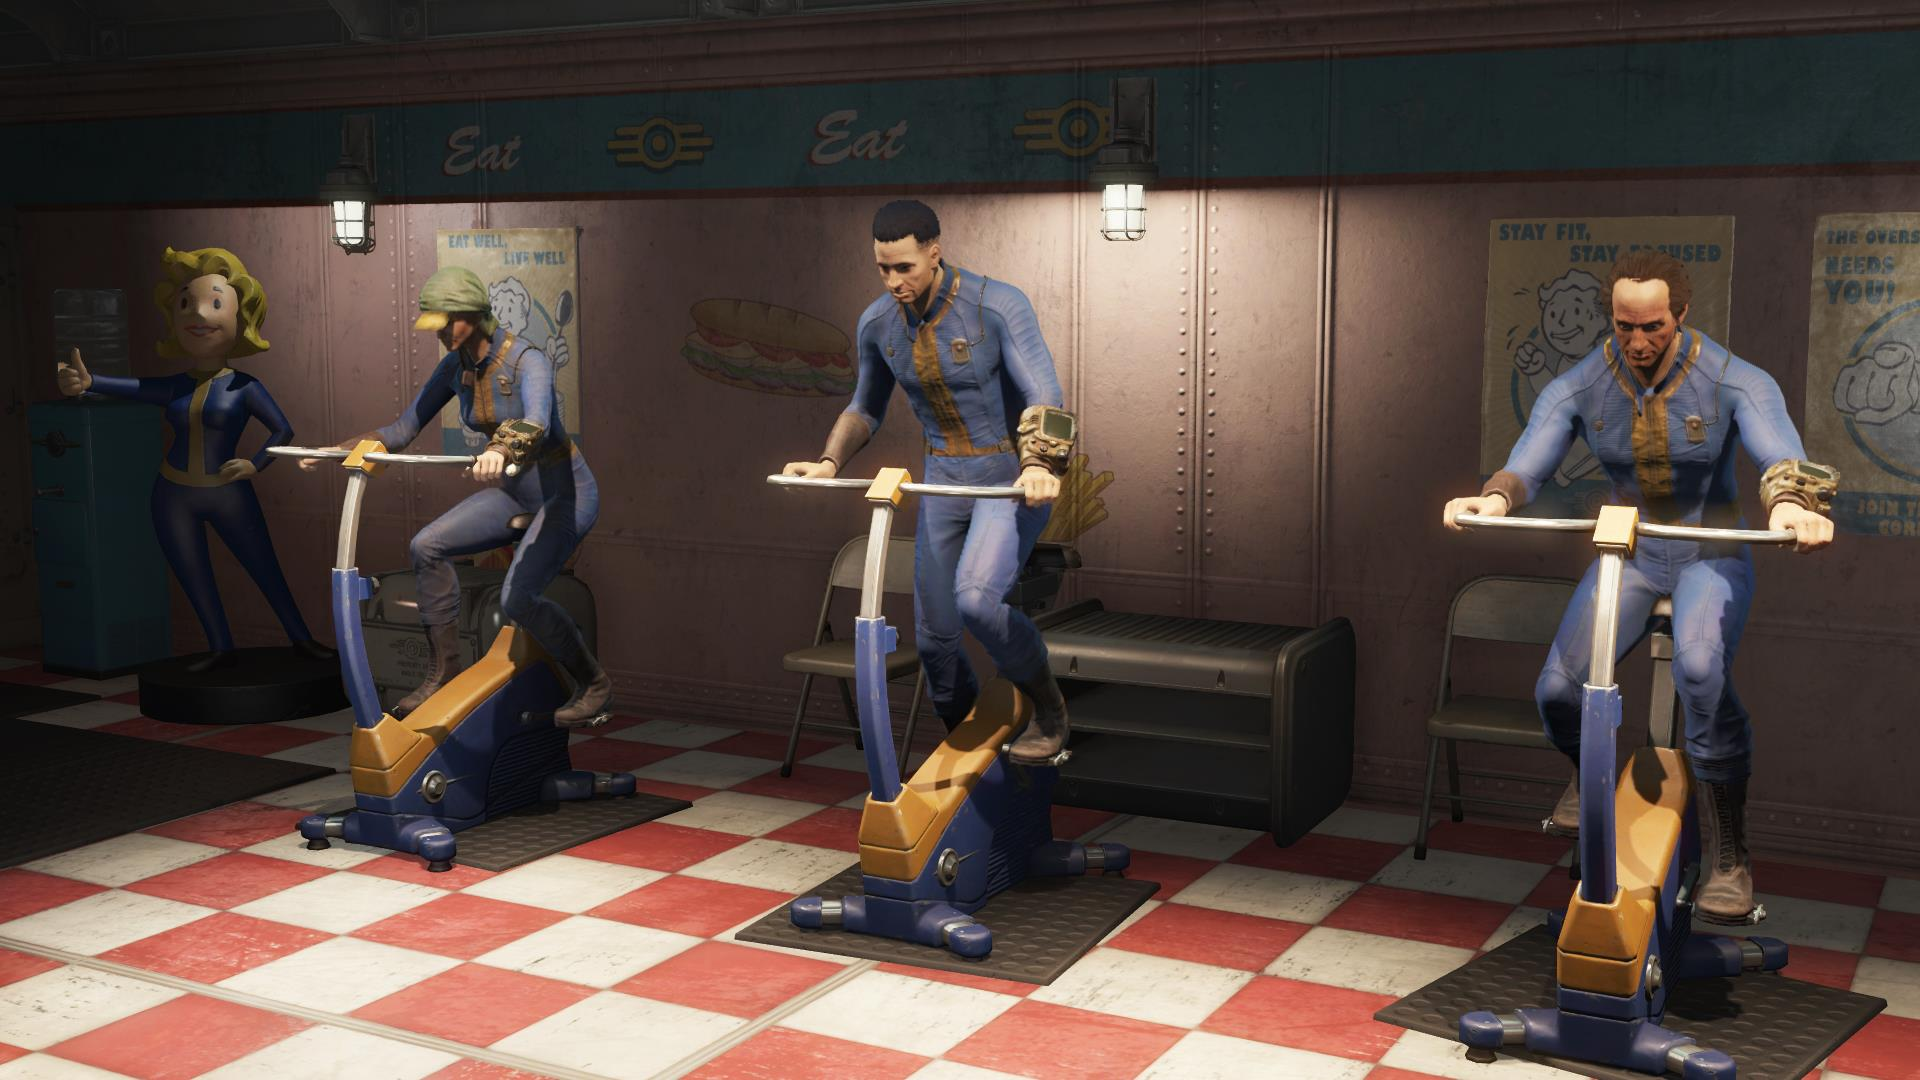 Fallout 4: How to Get the Vault Tec Workshop DLC Started